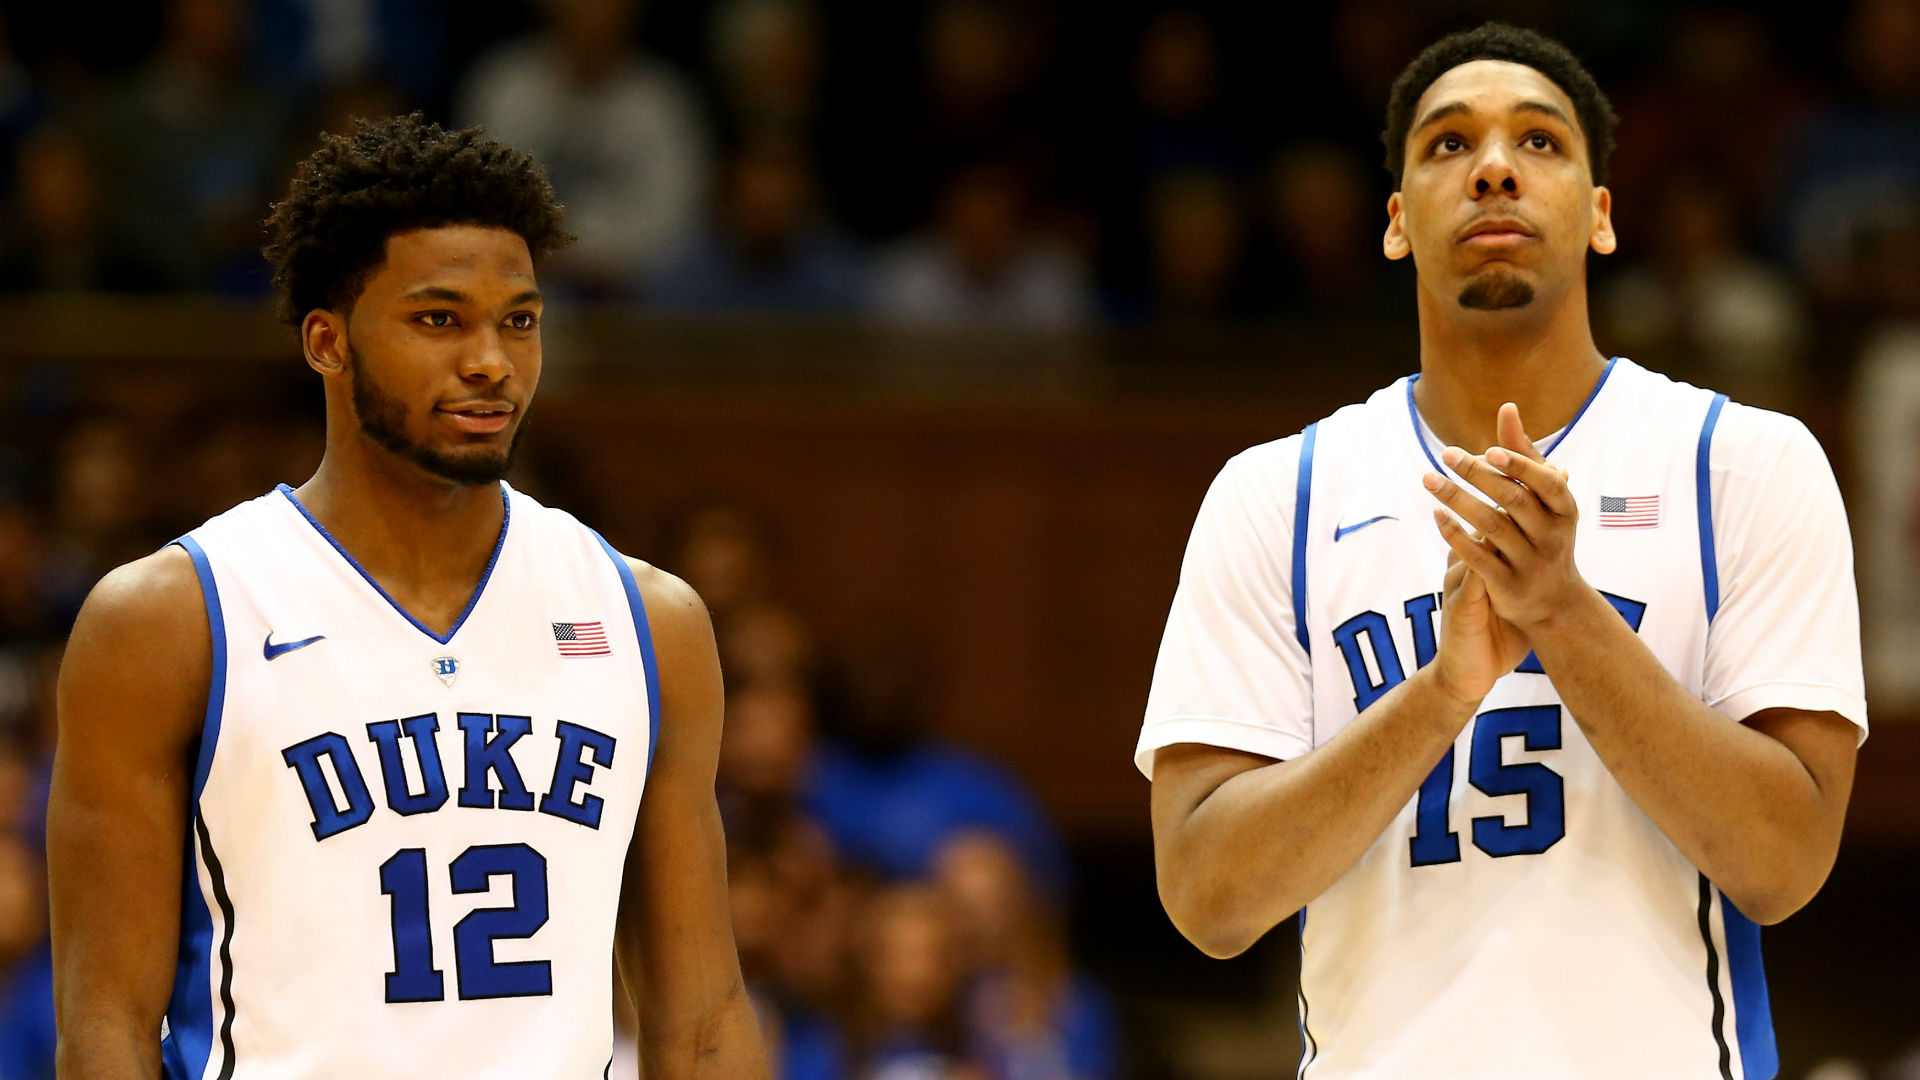 College basketball betting lines and picks – Duke meets Notre Dame in huge Wednesday showdown